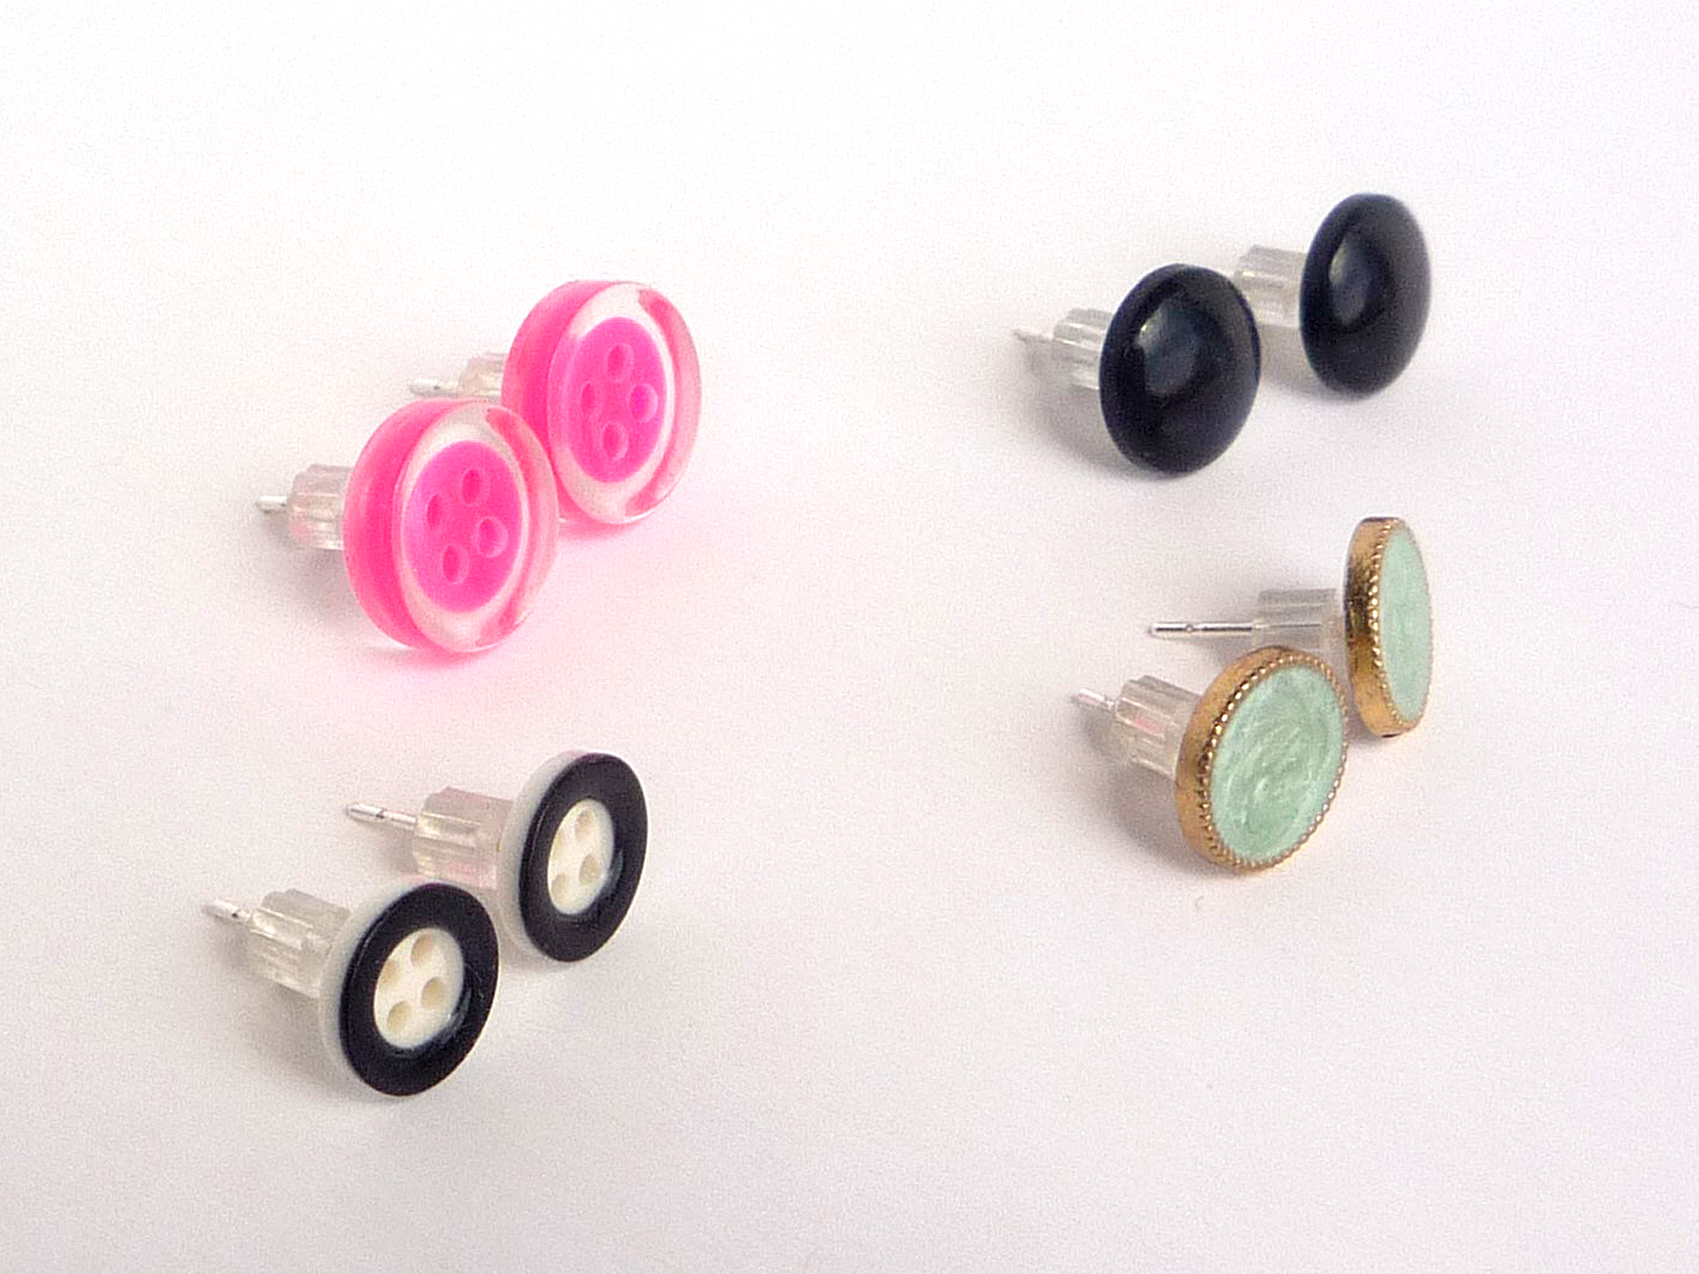 lyst pink earrings baker enamel stud rose product glitter normal button gallery tempany jewelry ted goldpink in